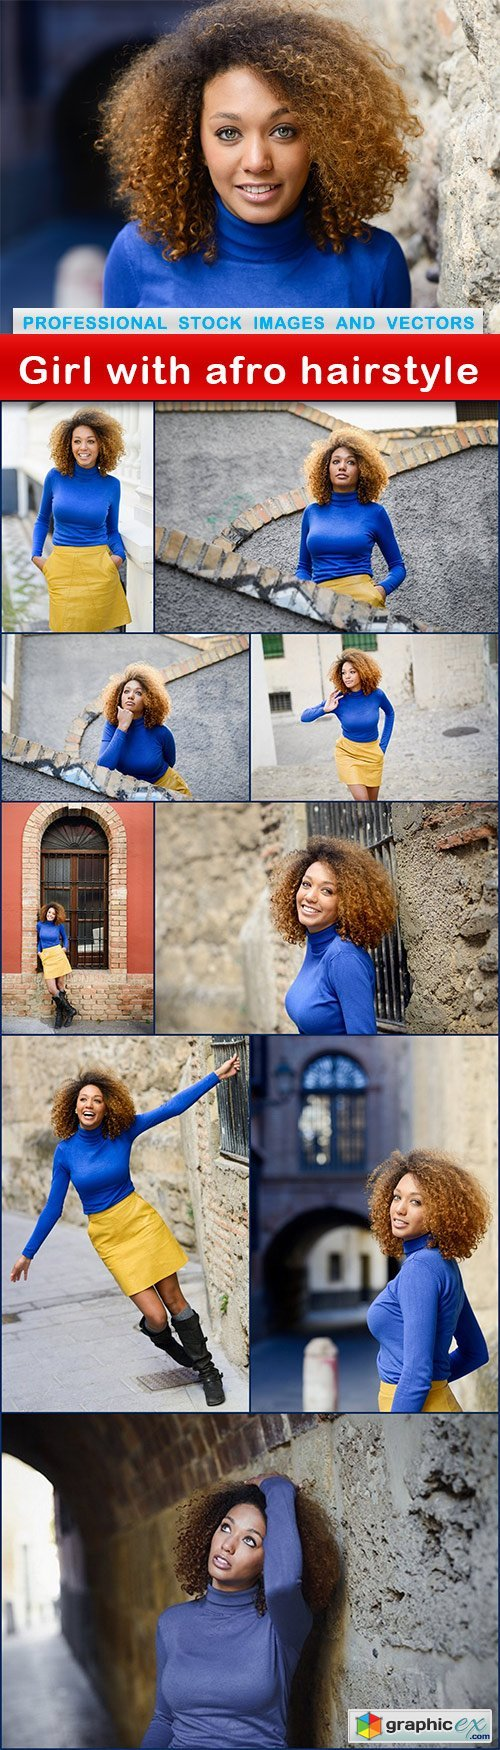 Girl with afro hairstyle - 10 UHQ JPEG